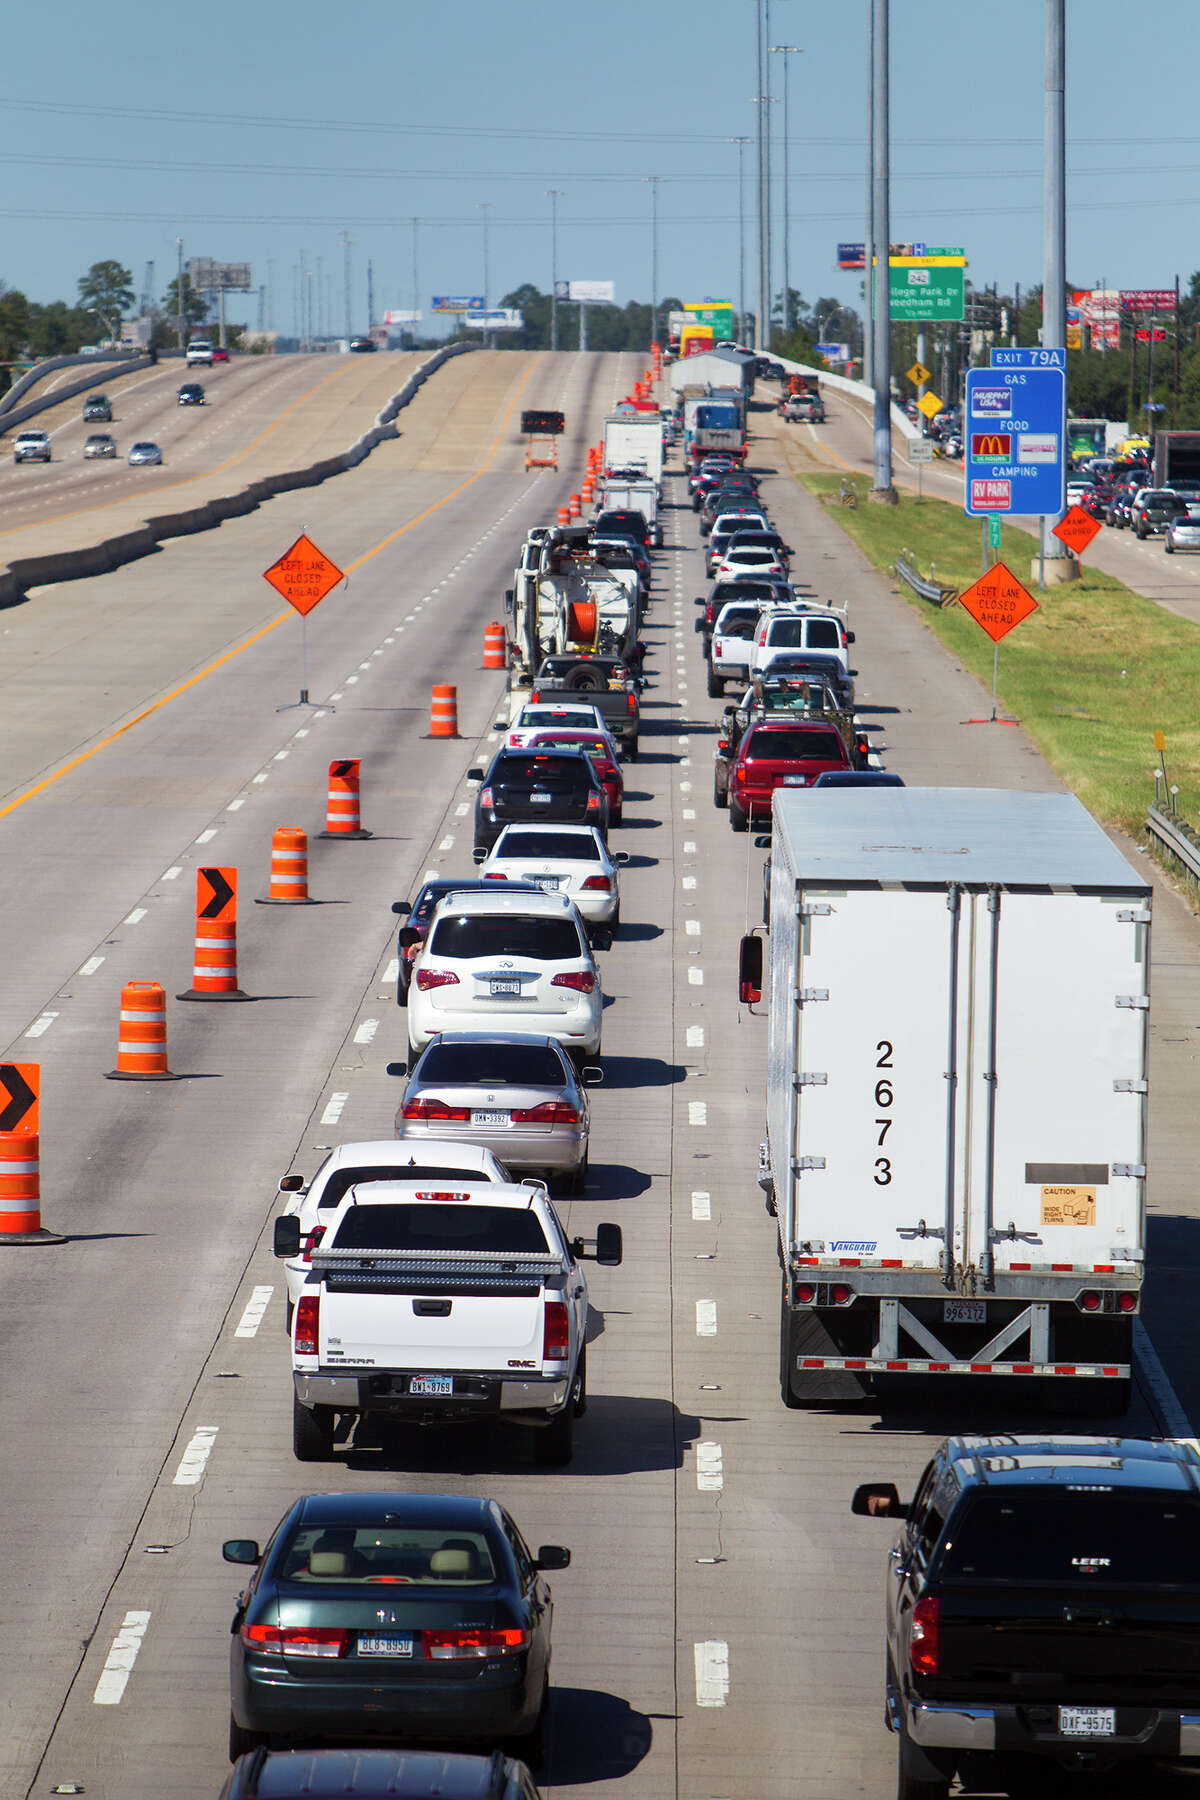 Traffic backs up along Interstate 45 near Lake Woodlands Drive on Oct. 4 in Conroe during construction. Transportation officials estimate Texas needs $5 billion more annually than it currently spends on highways.